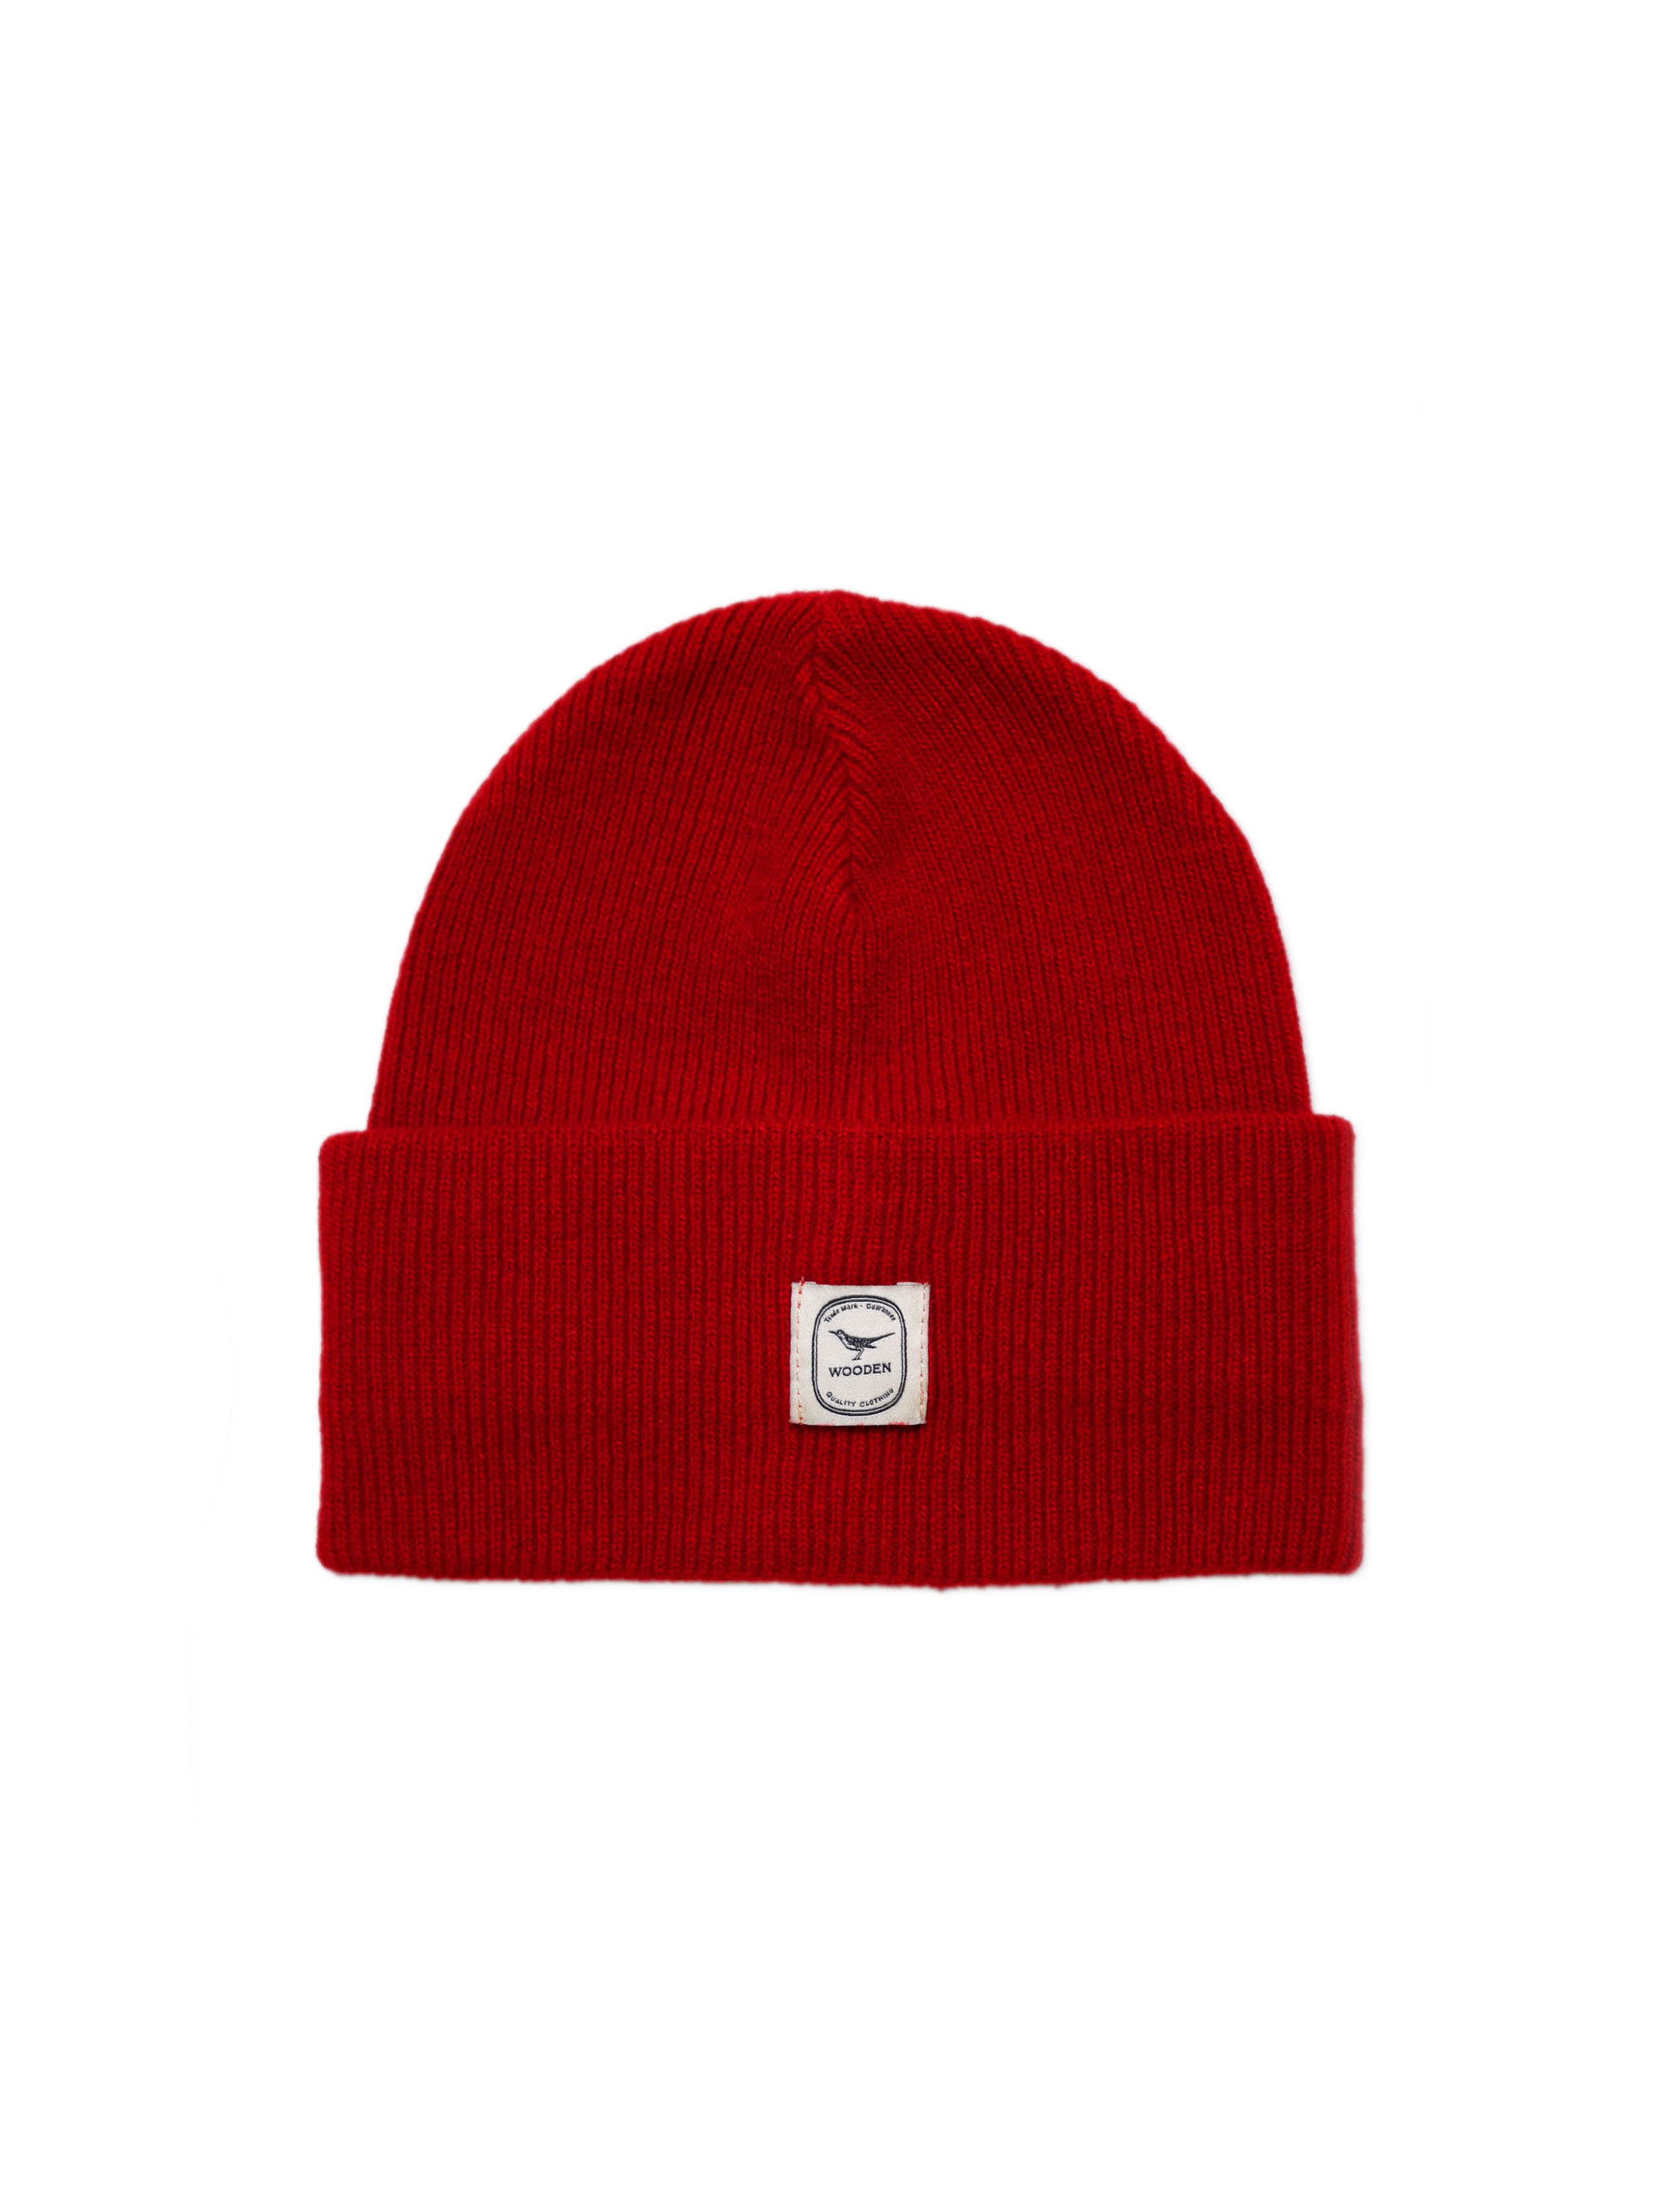 Beanie Rosso   Wooden Store